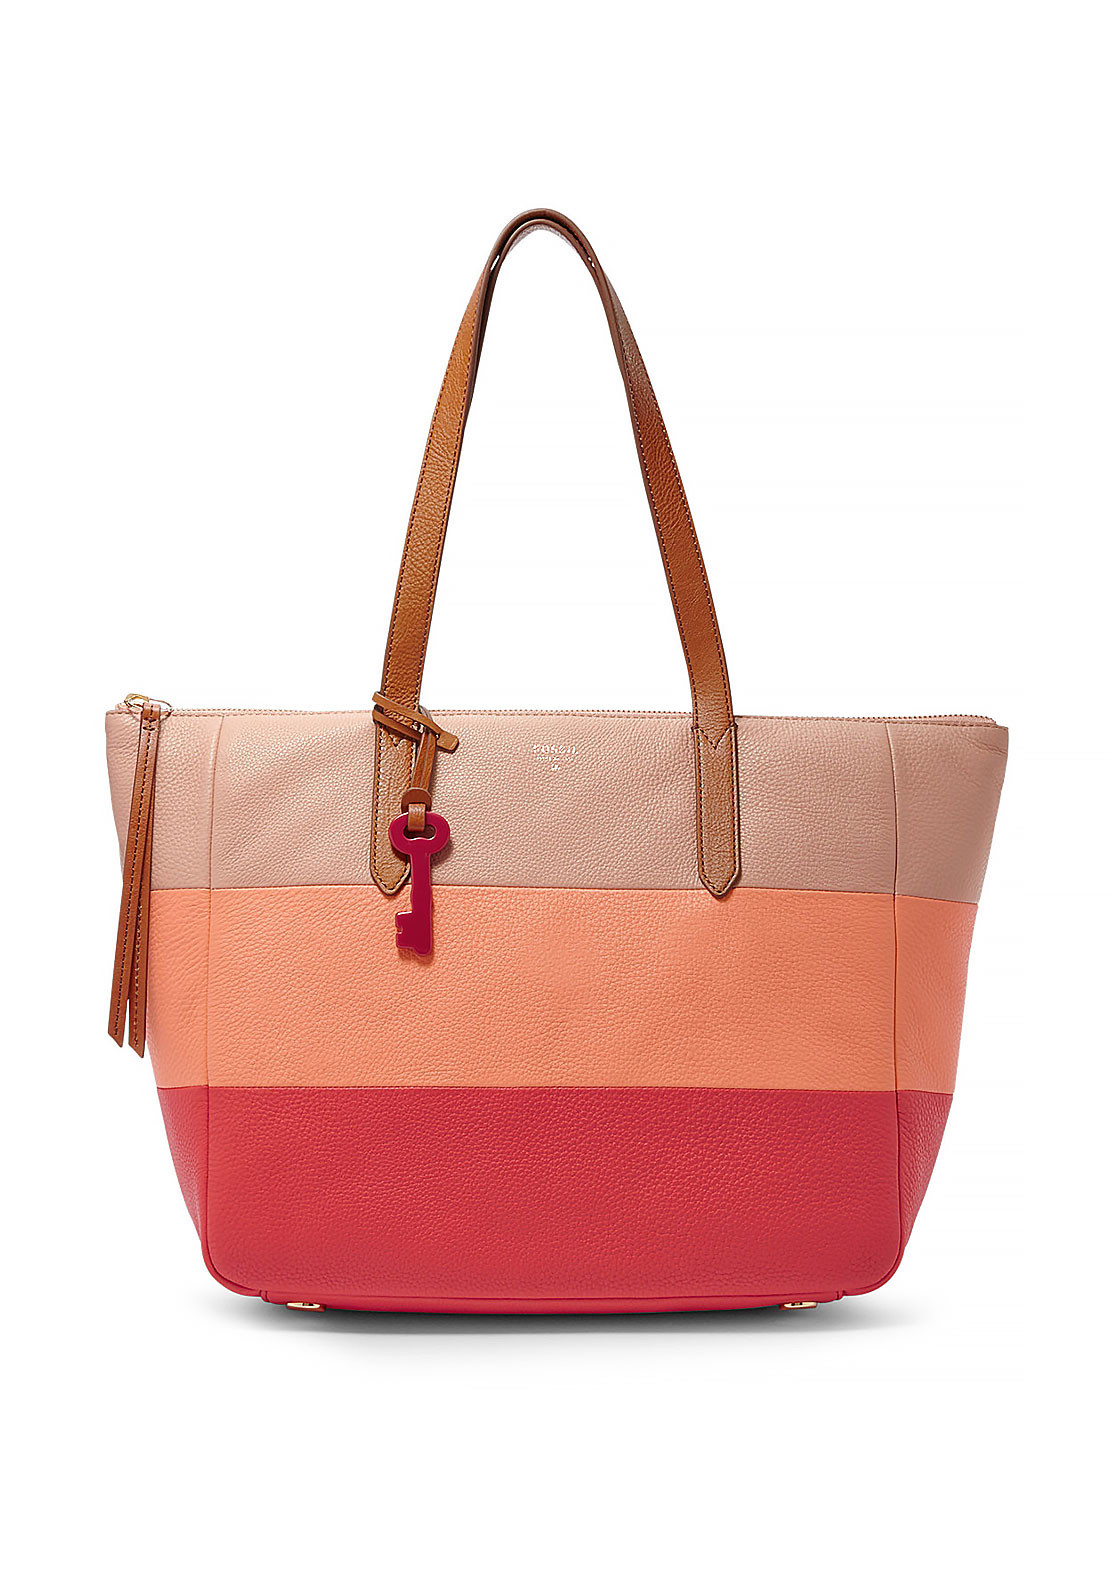 Fossil Sydney Striped Shopper Tote Bag, Multi-Coloured